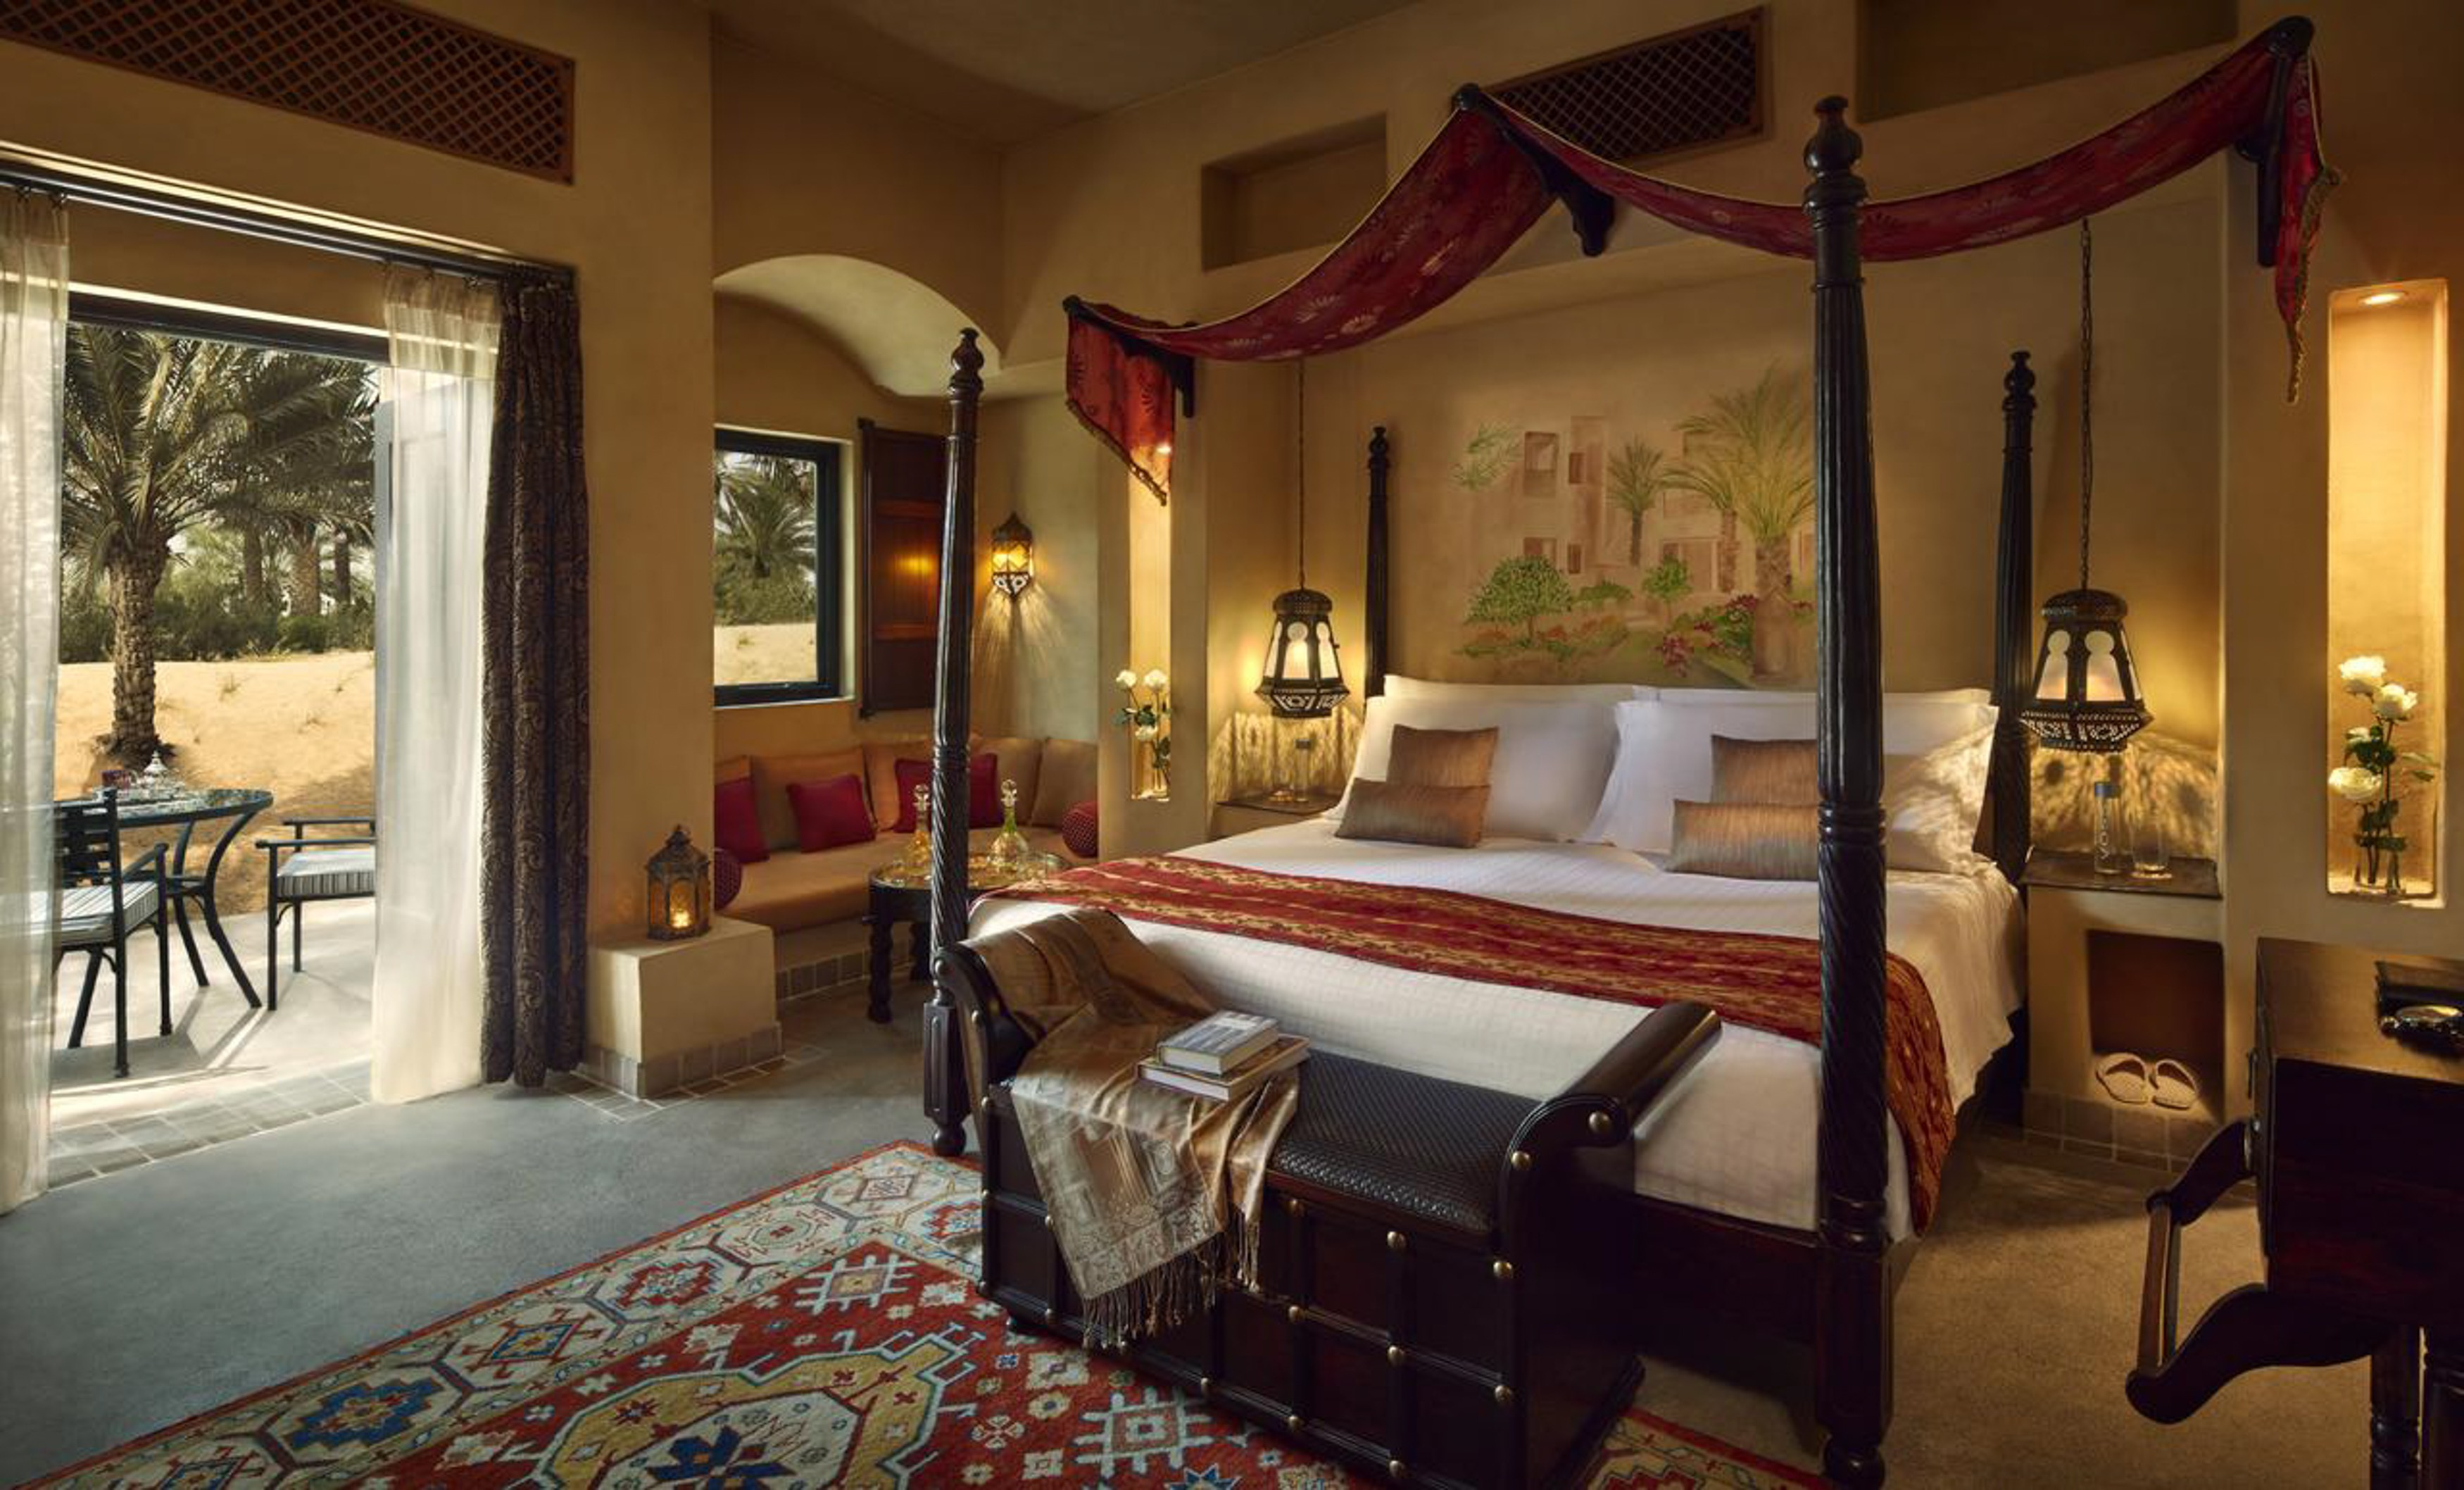 Bab Al Shams is located in the Al-Qudra desert, just a short drive from central Dubai